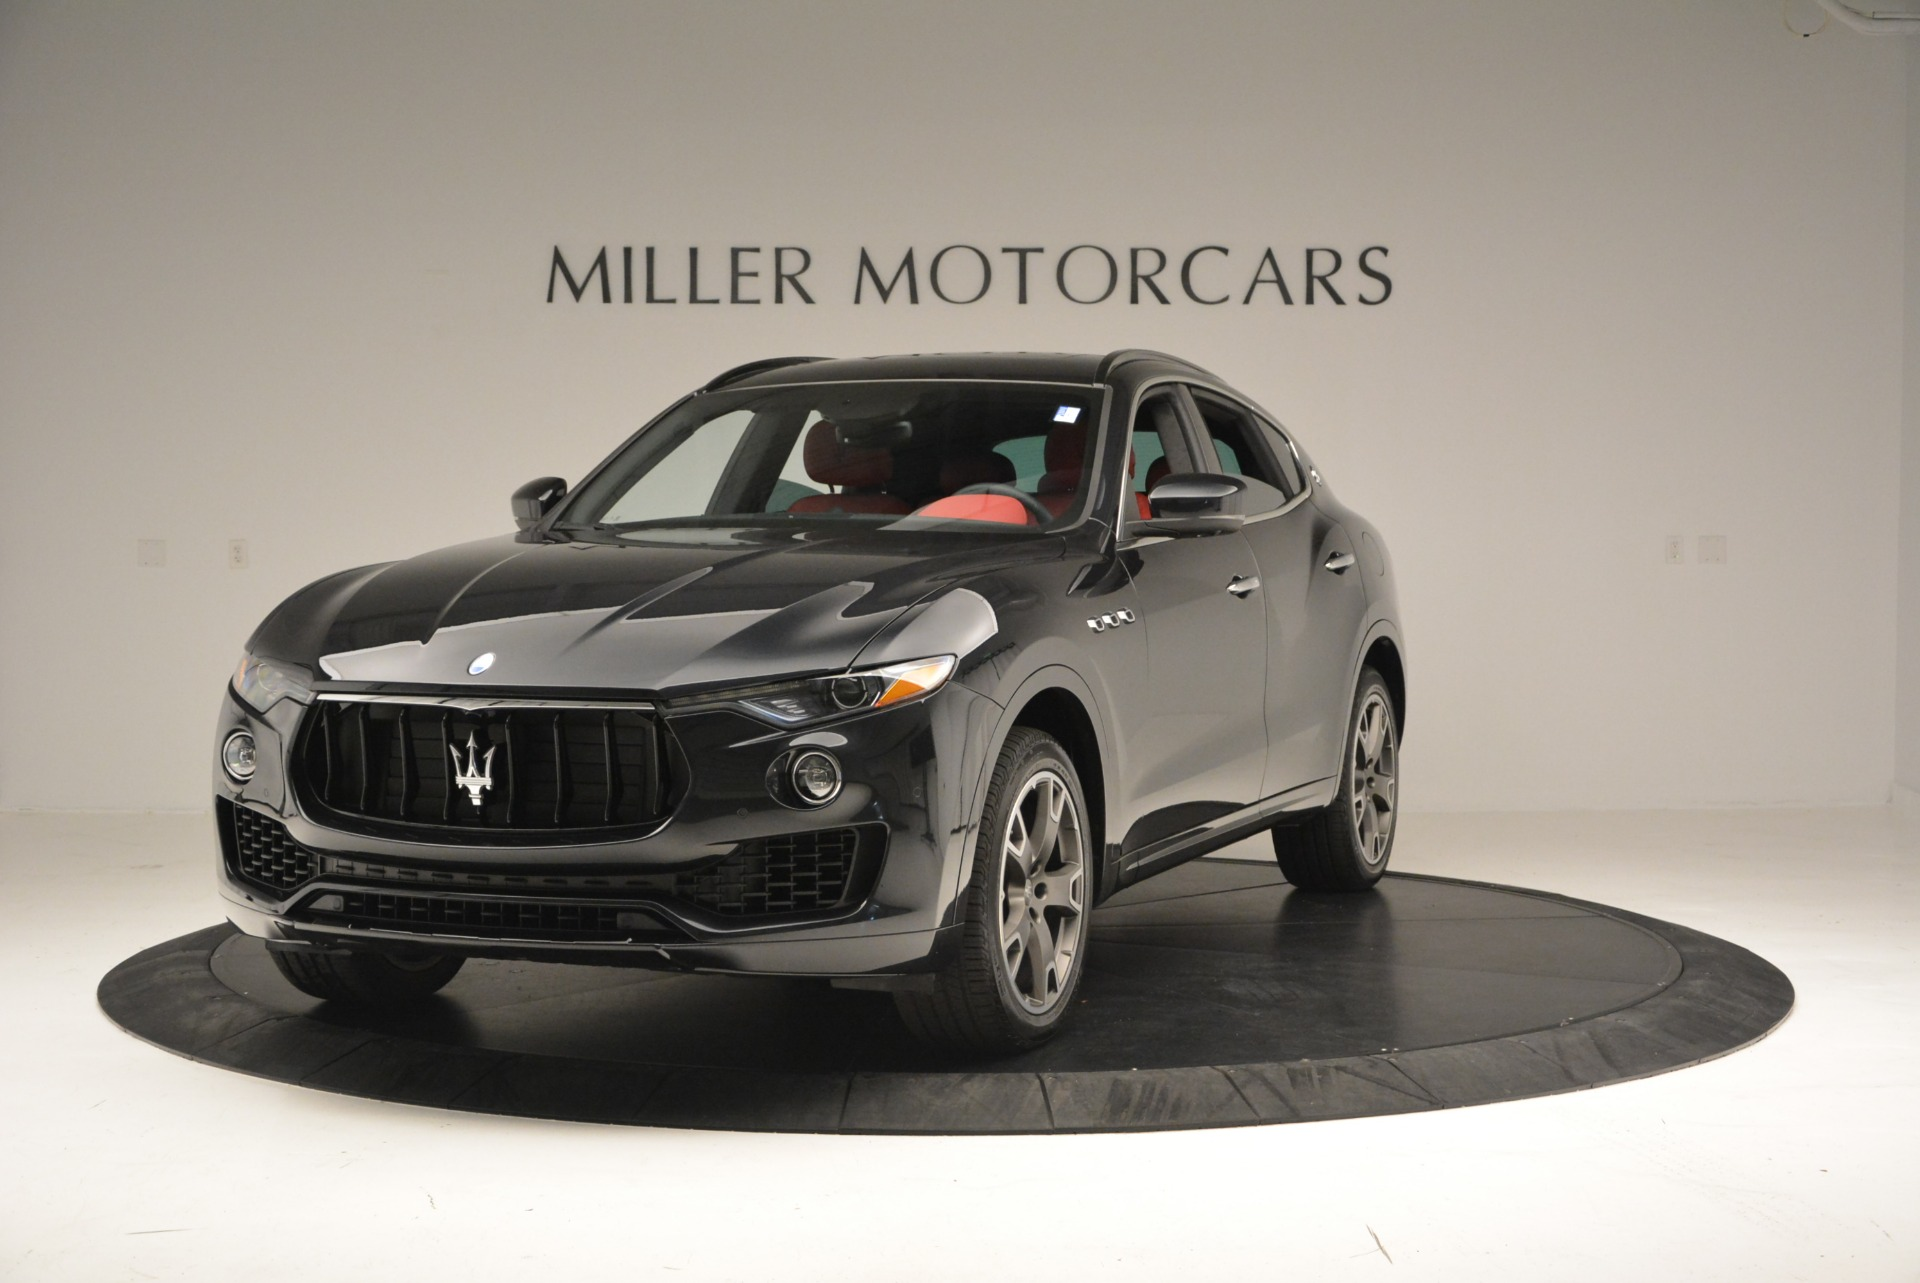 New 2017 Maserati Levante for sale Sold at Bugatti of Greenwich in Greenwich CT 06830 1